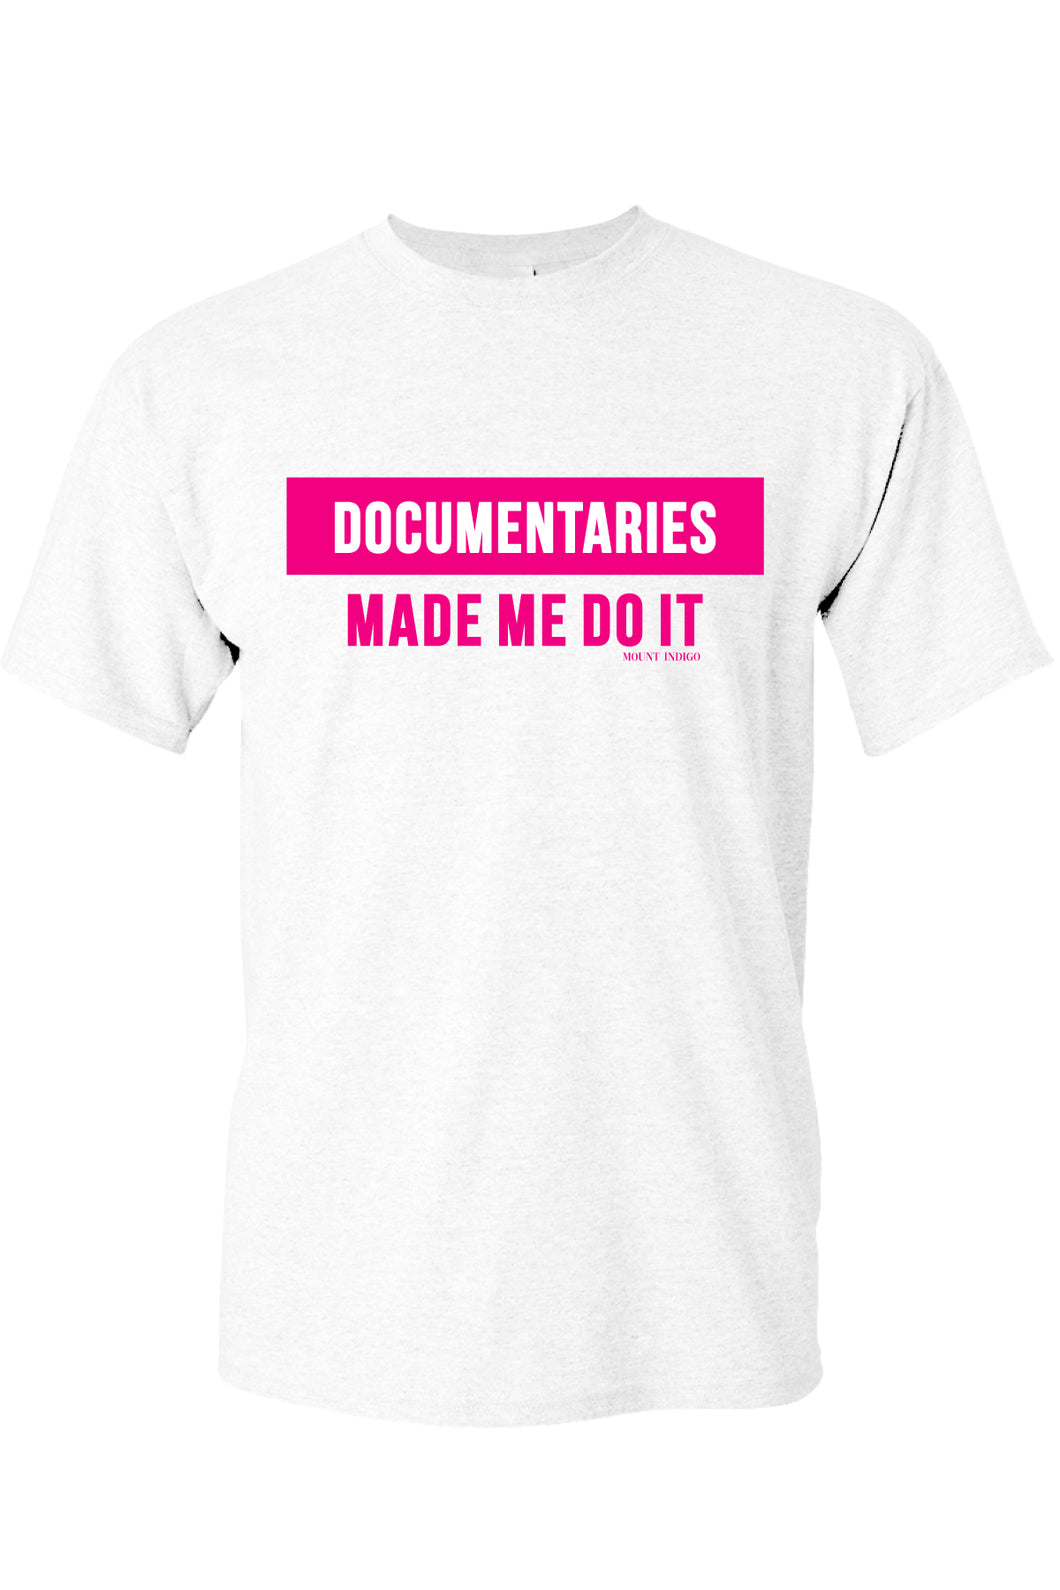 Documentaries Made Me Do It Tee